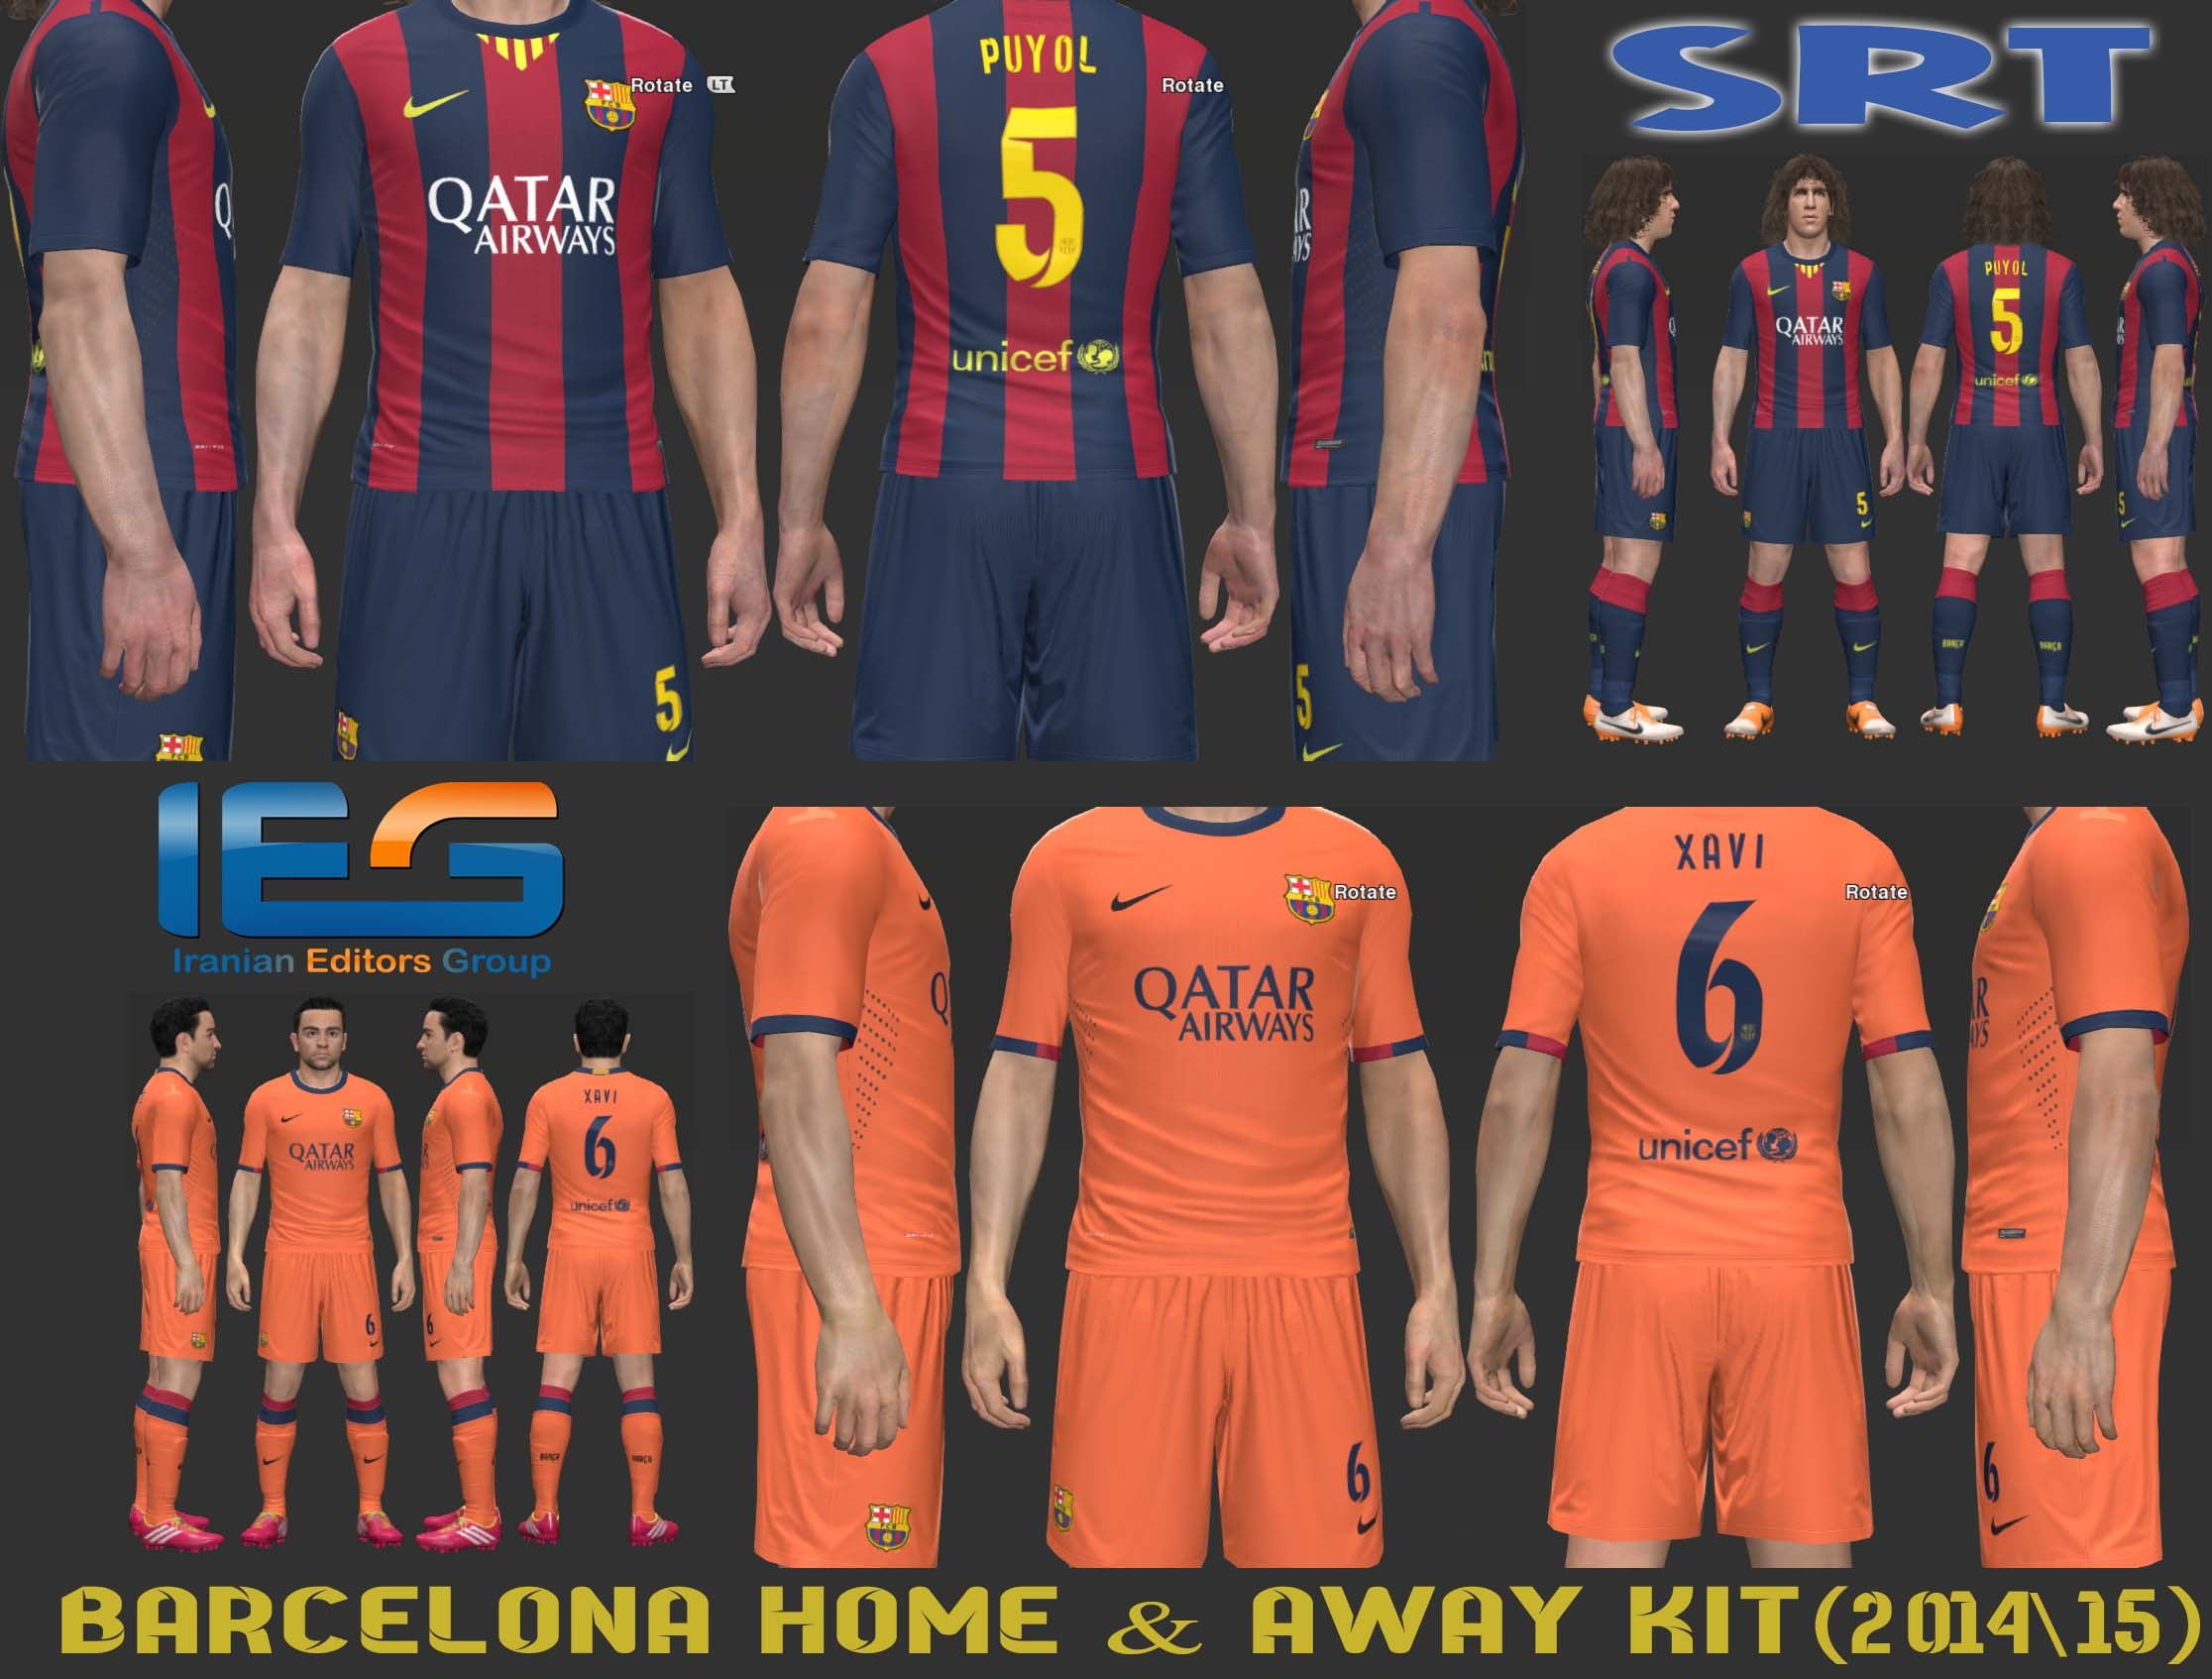 0a3ca1746f9 http   www.pespatchs.com wp-content uploads Barcelona-2014-15-Home-Away-Kits -By-SRT.jpg